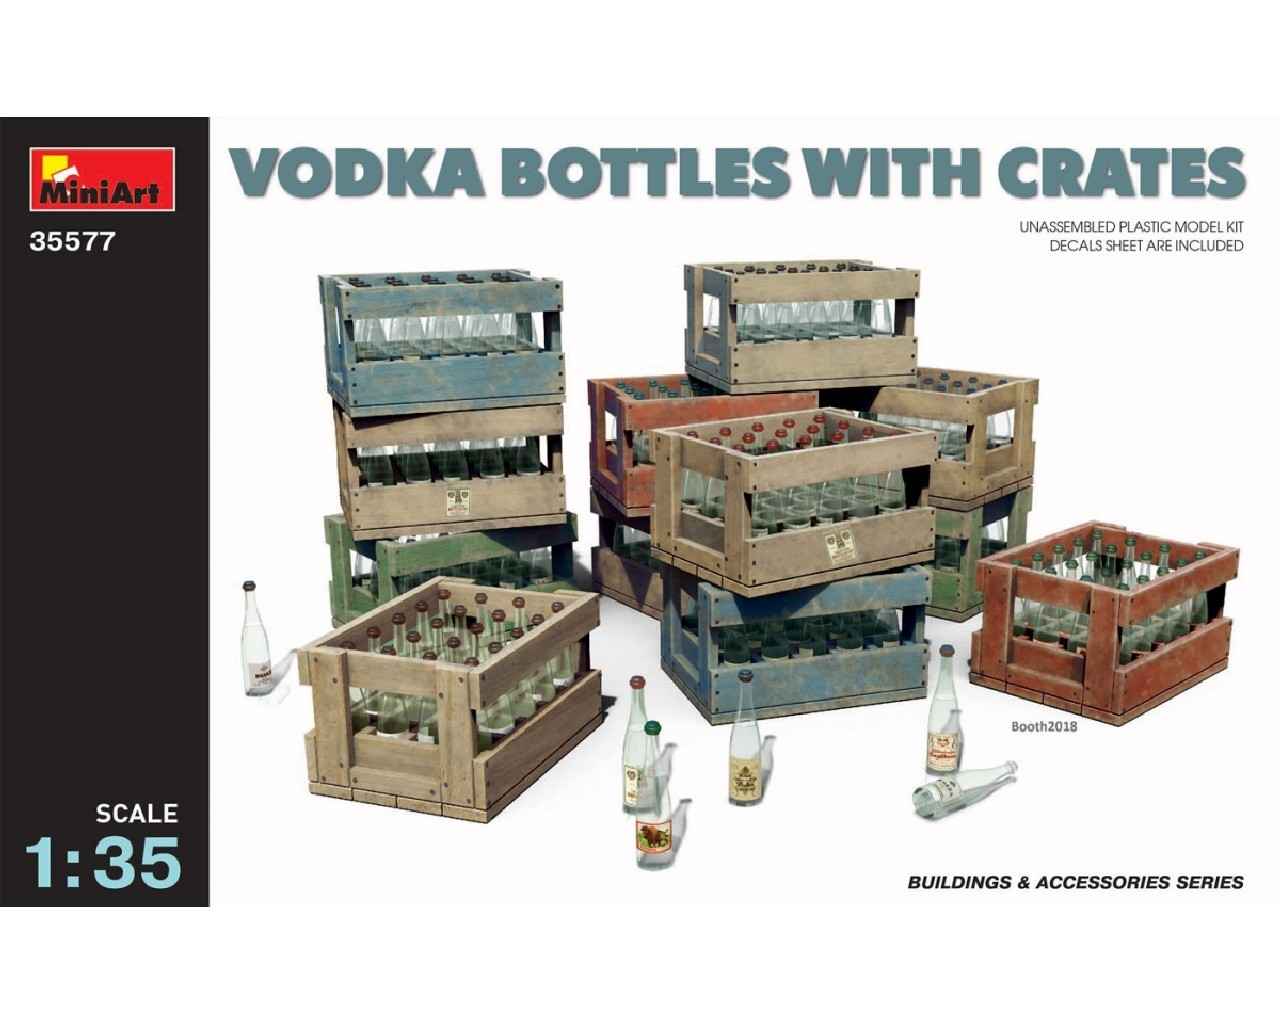 1/35 Vodka Bottles with Crates